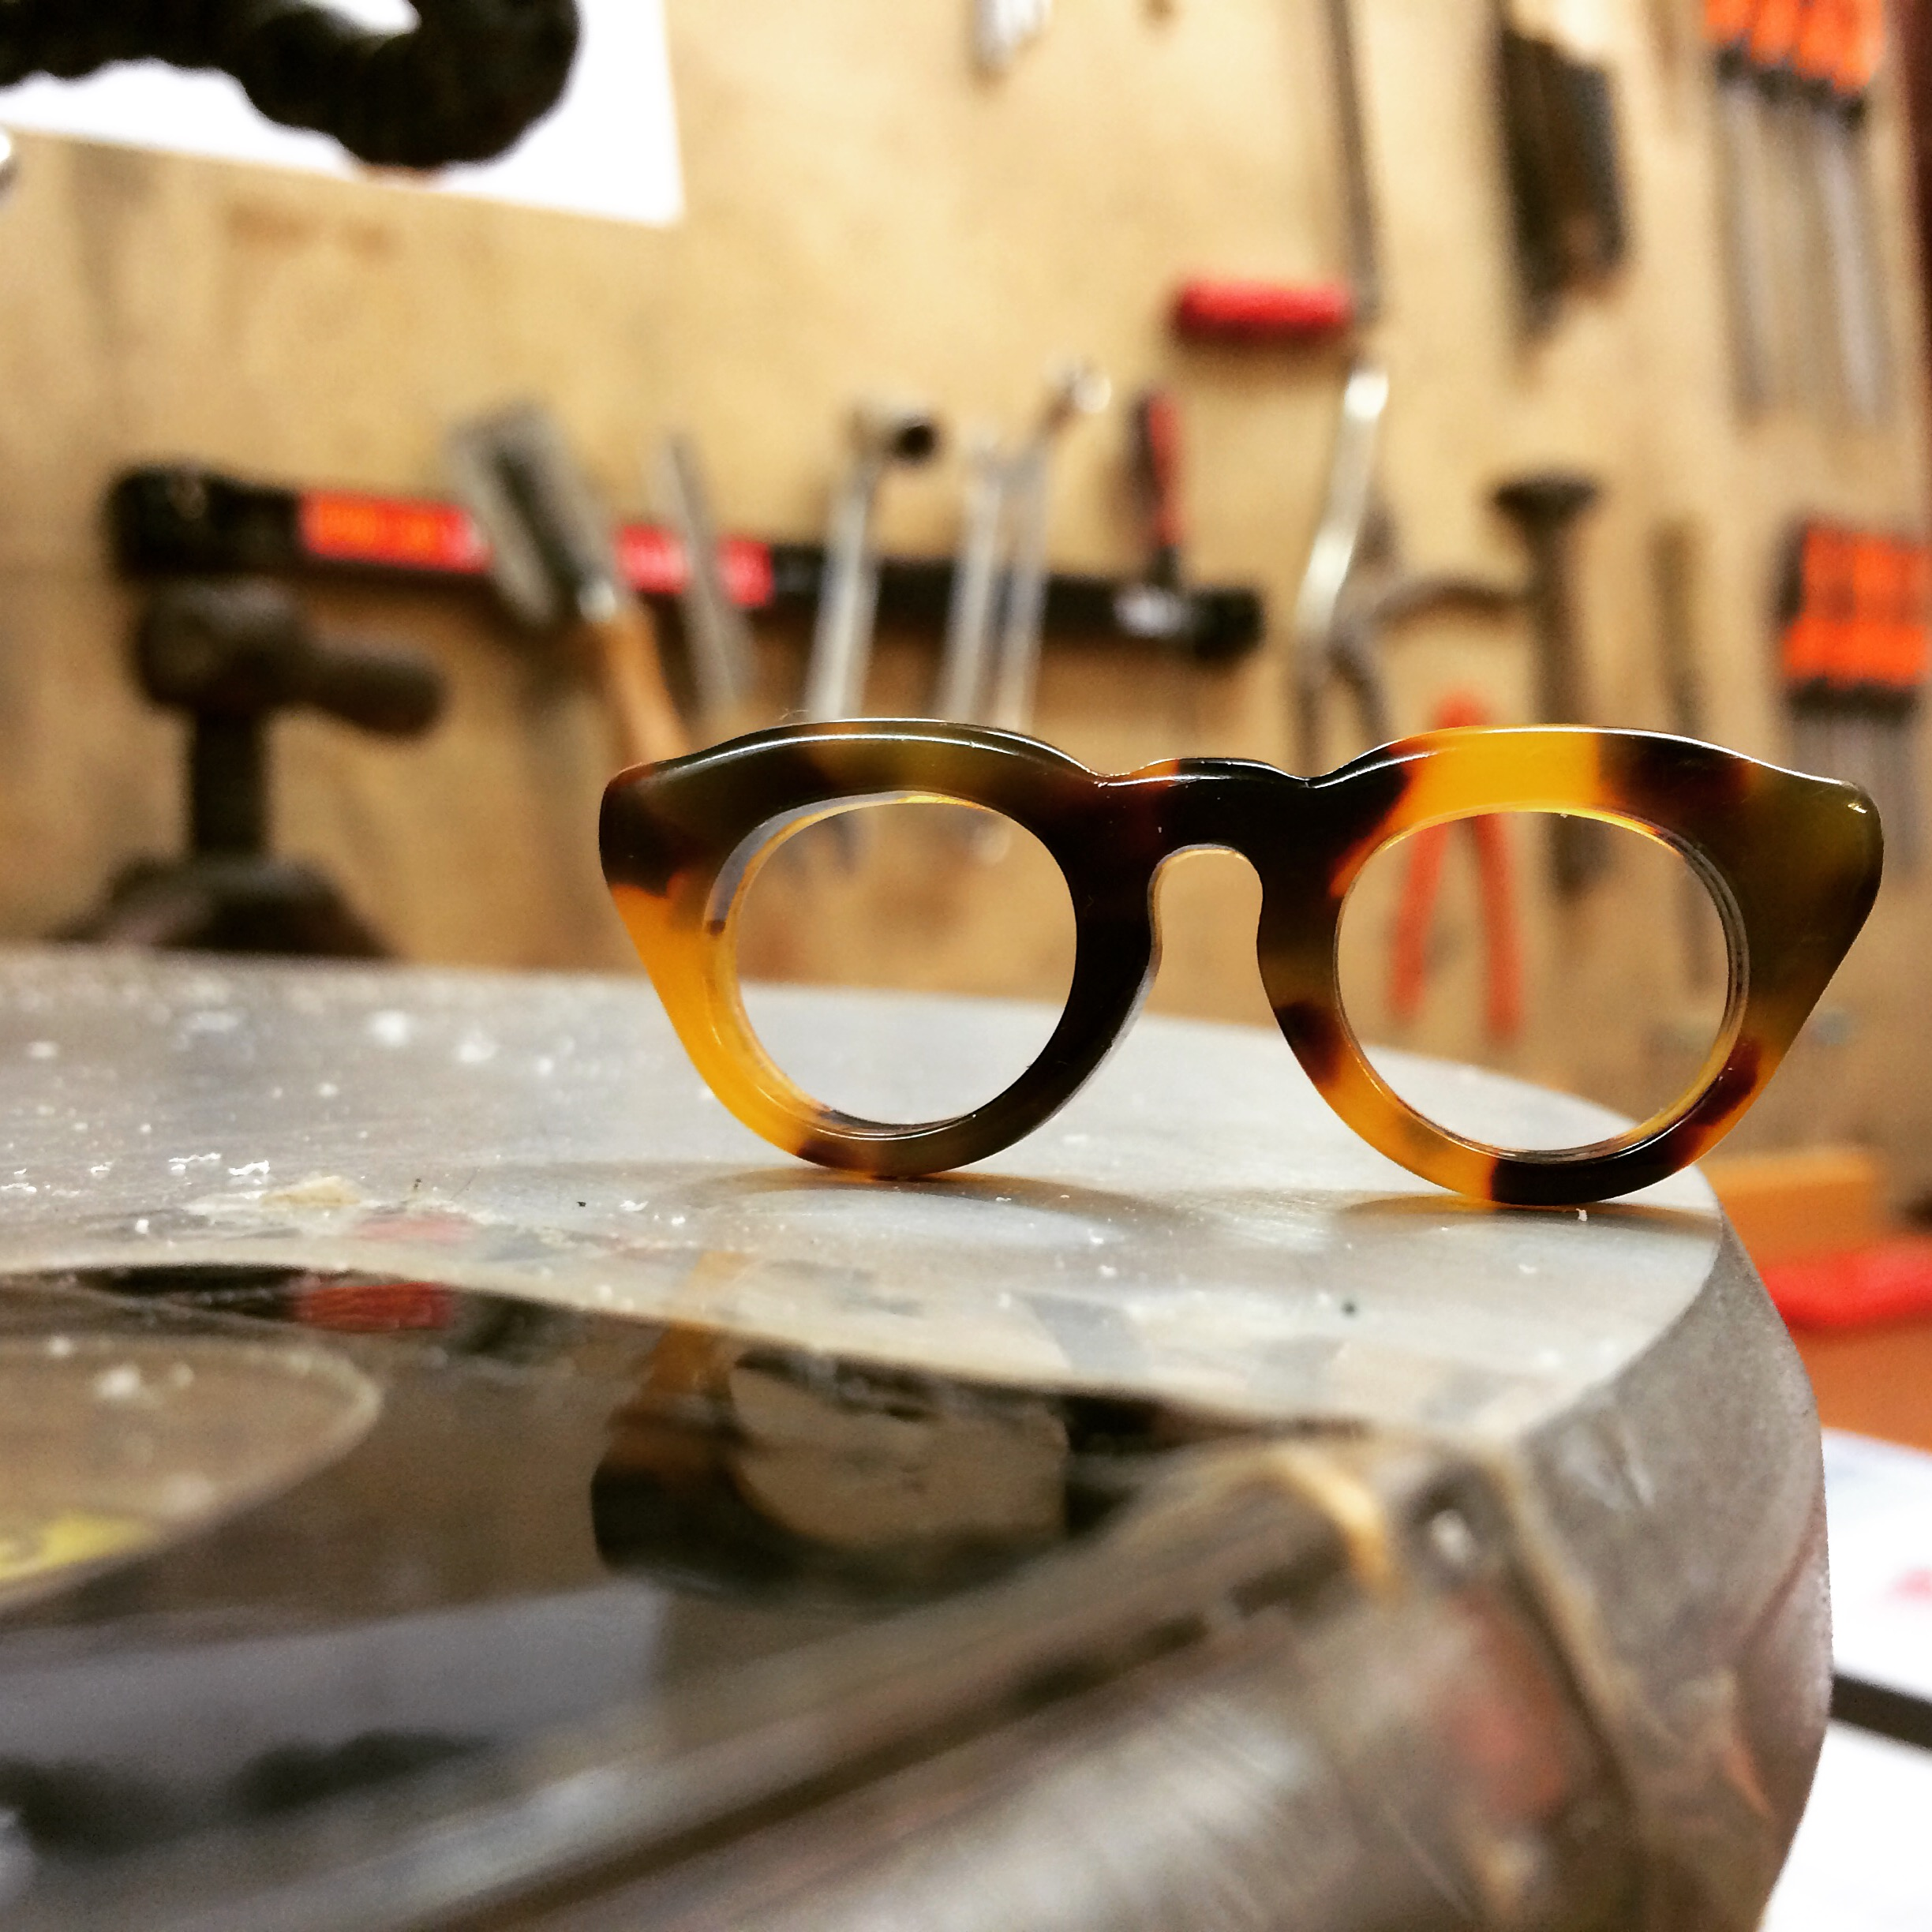 Cute little glasses in the workshop